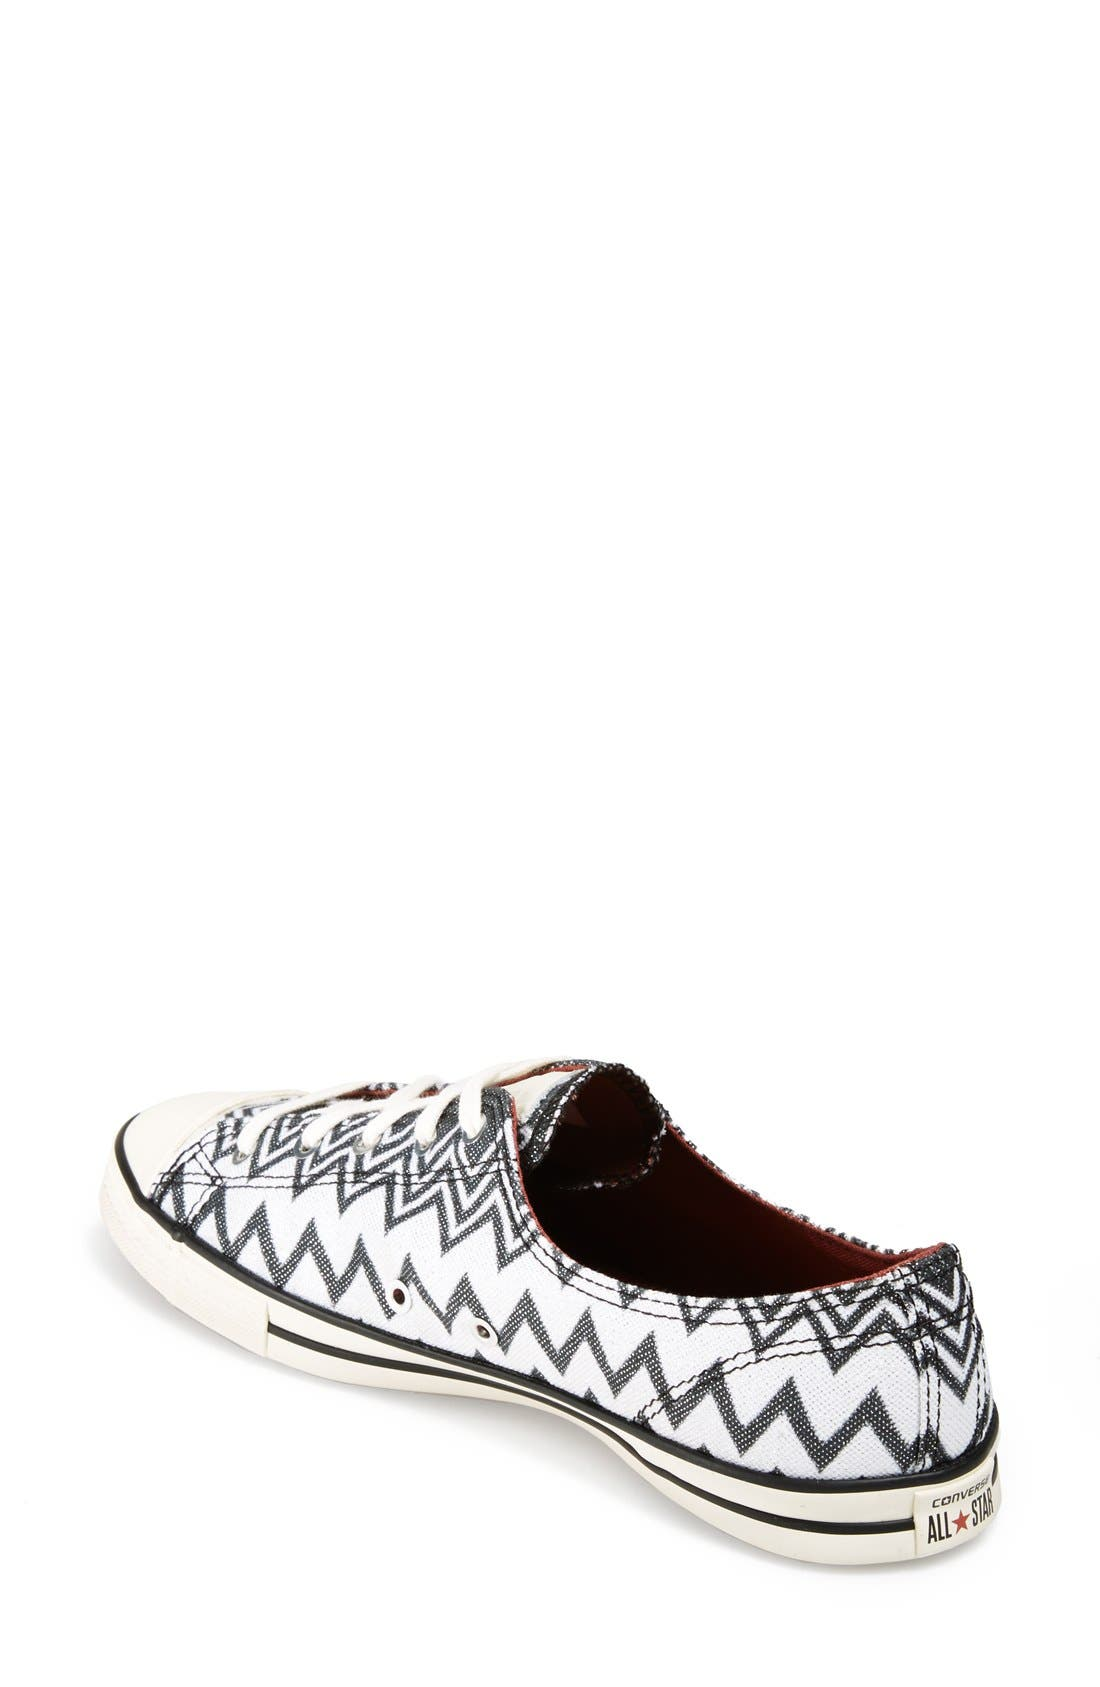 x Missoni Chuck Taylor<sup>®</sup> All Star<sup>®</sup> 'Fancy' Ox Sneaker,                             Alternate thumbnail 2, color,